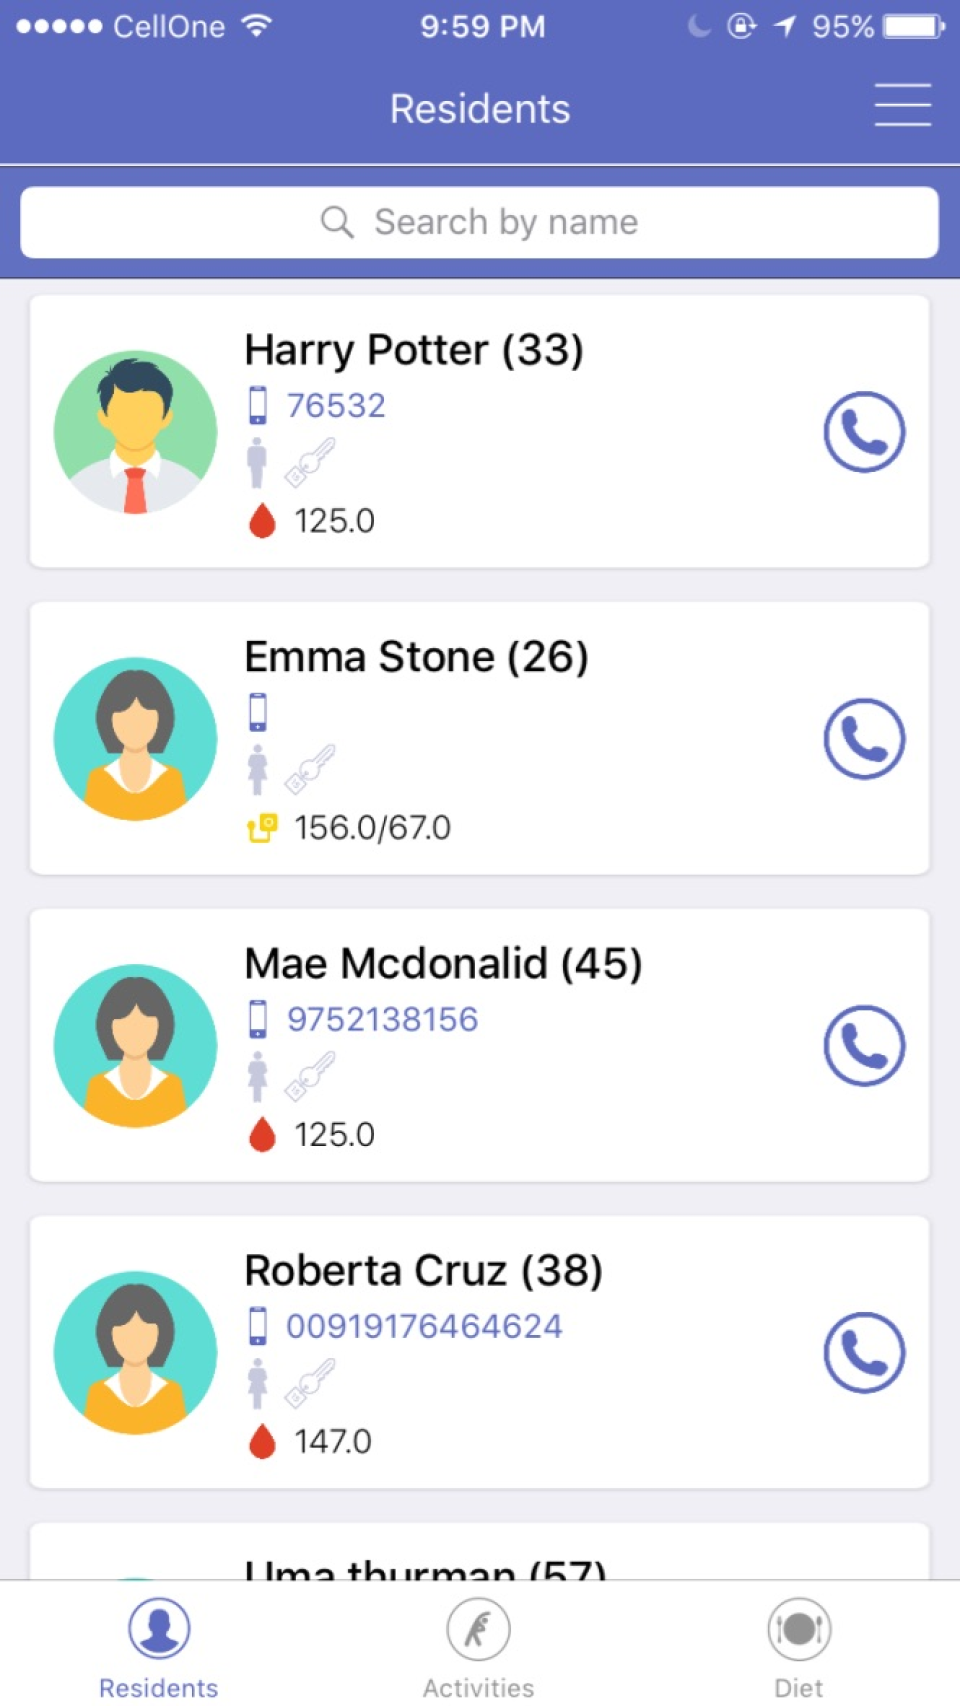 Manage a list of residents and search by name